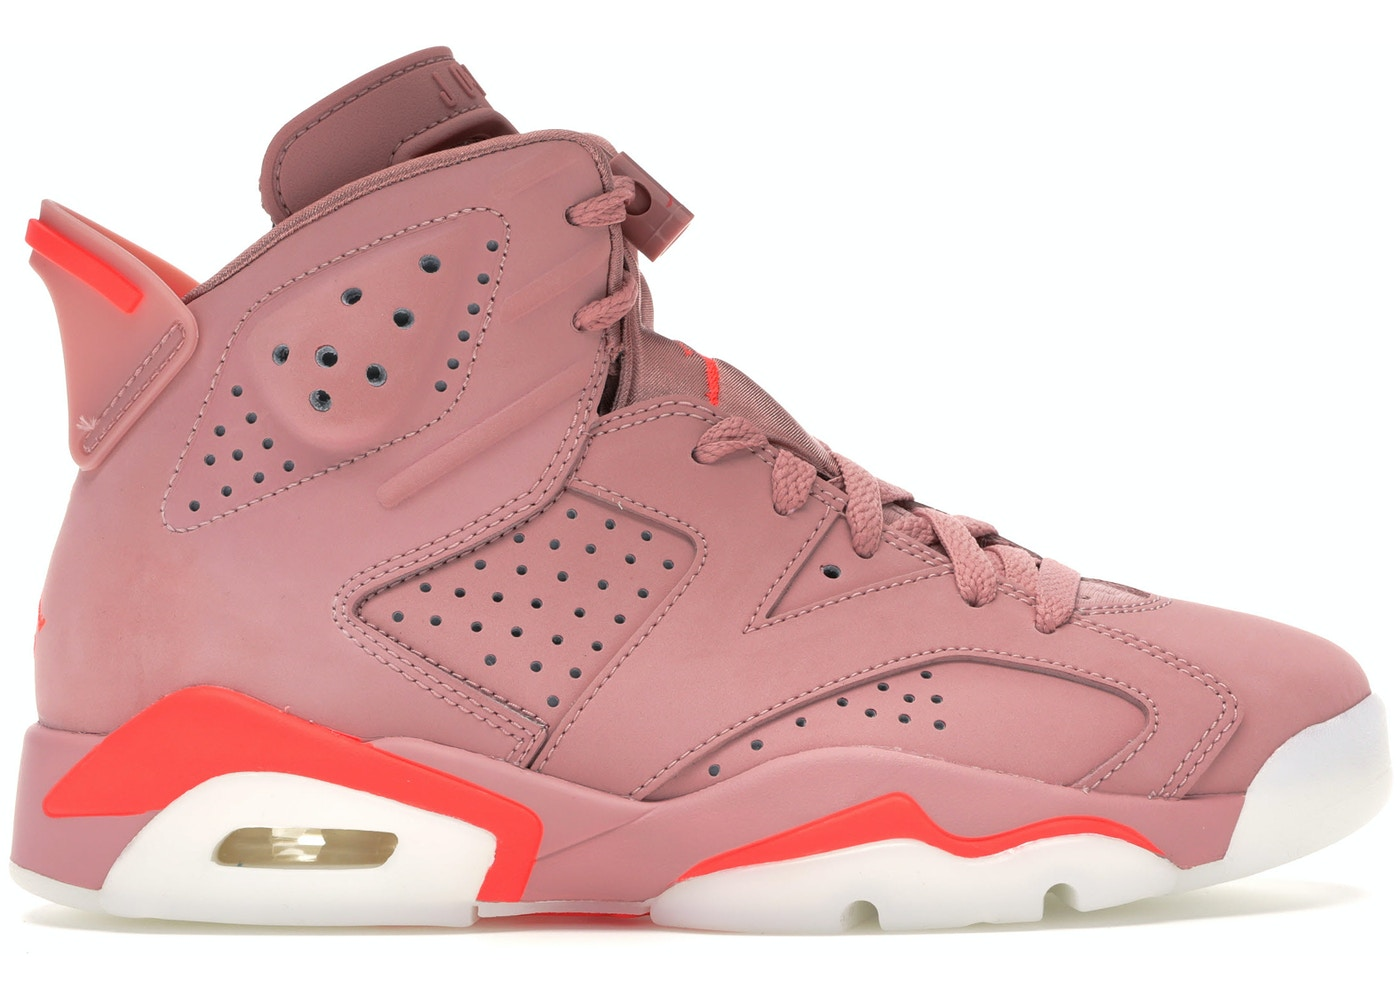 new product 4ba66 65da2 Jordan 6 Retro Aleali May (W)